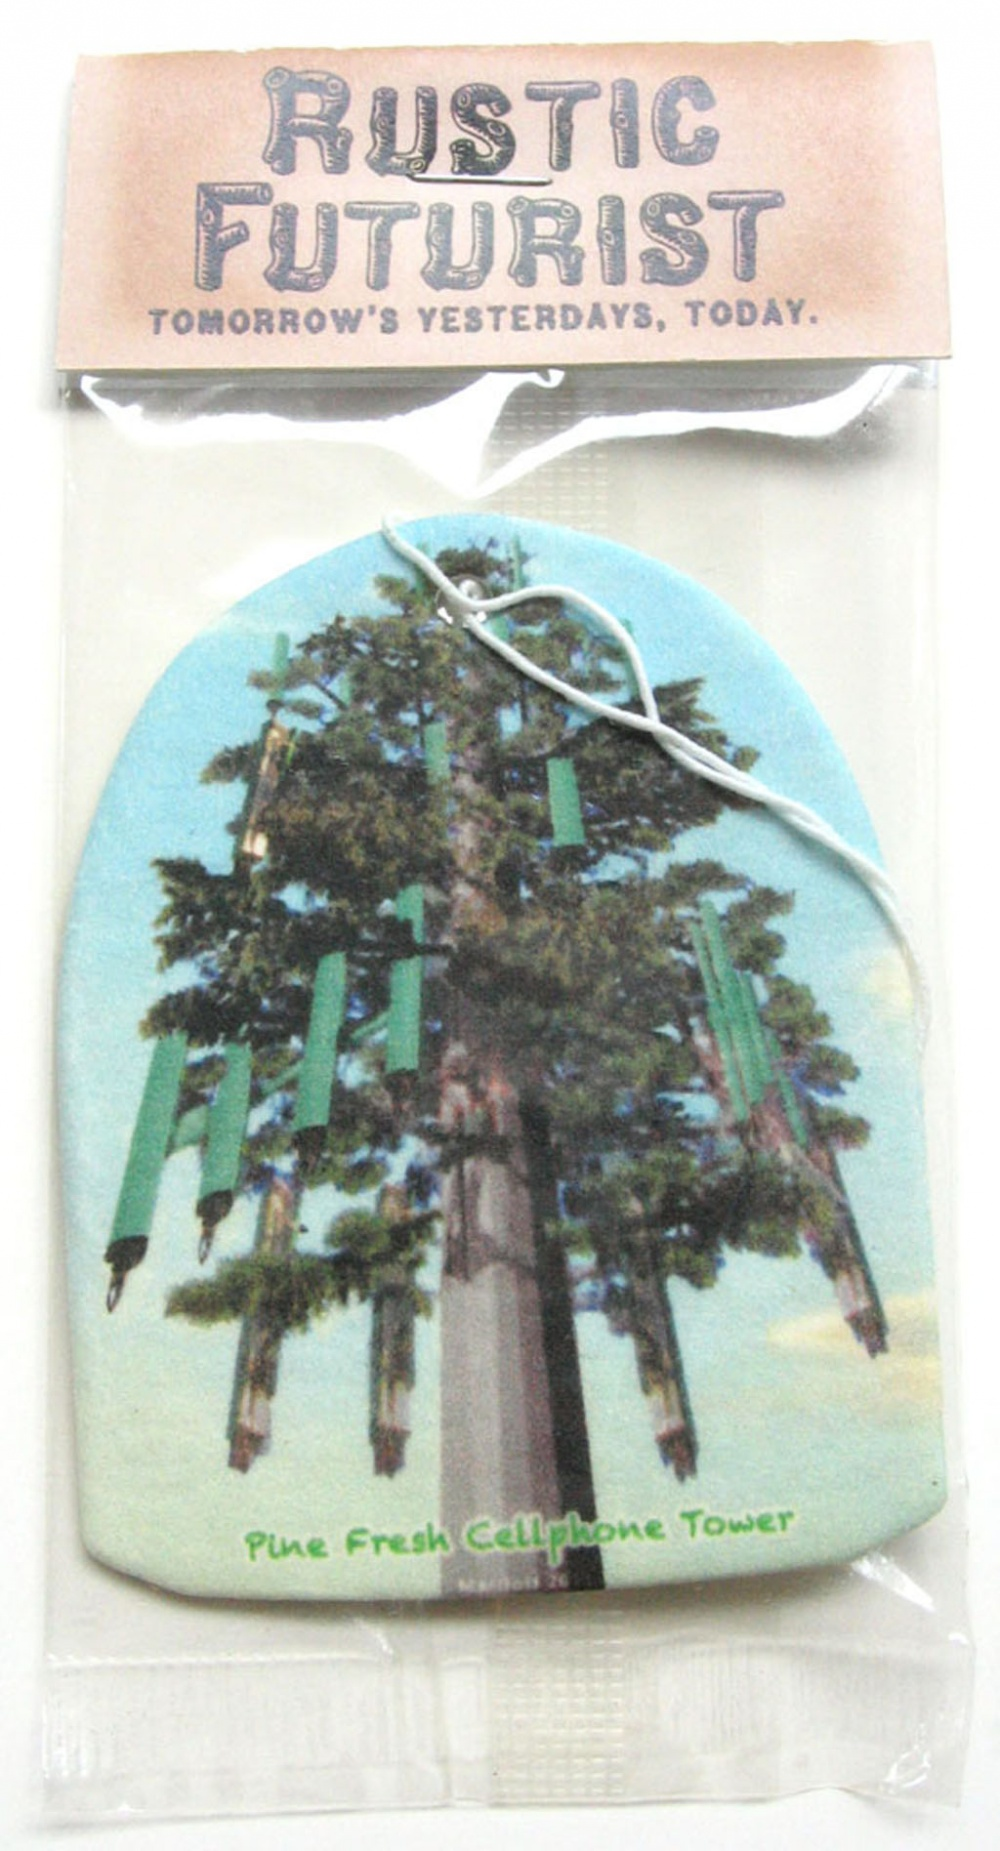 Rustic Futurist: Pine Fresh cellphone tower